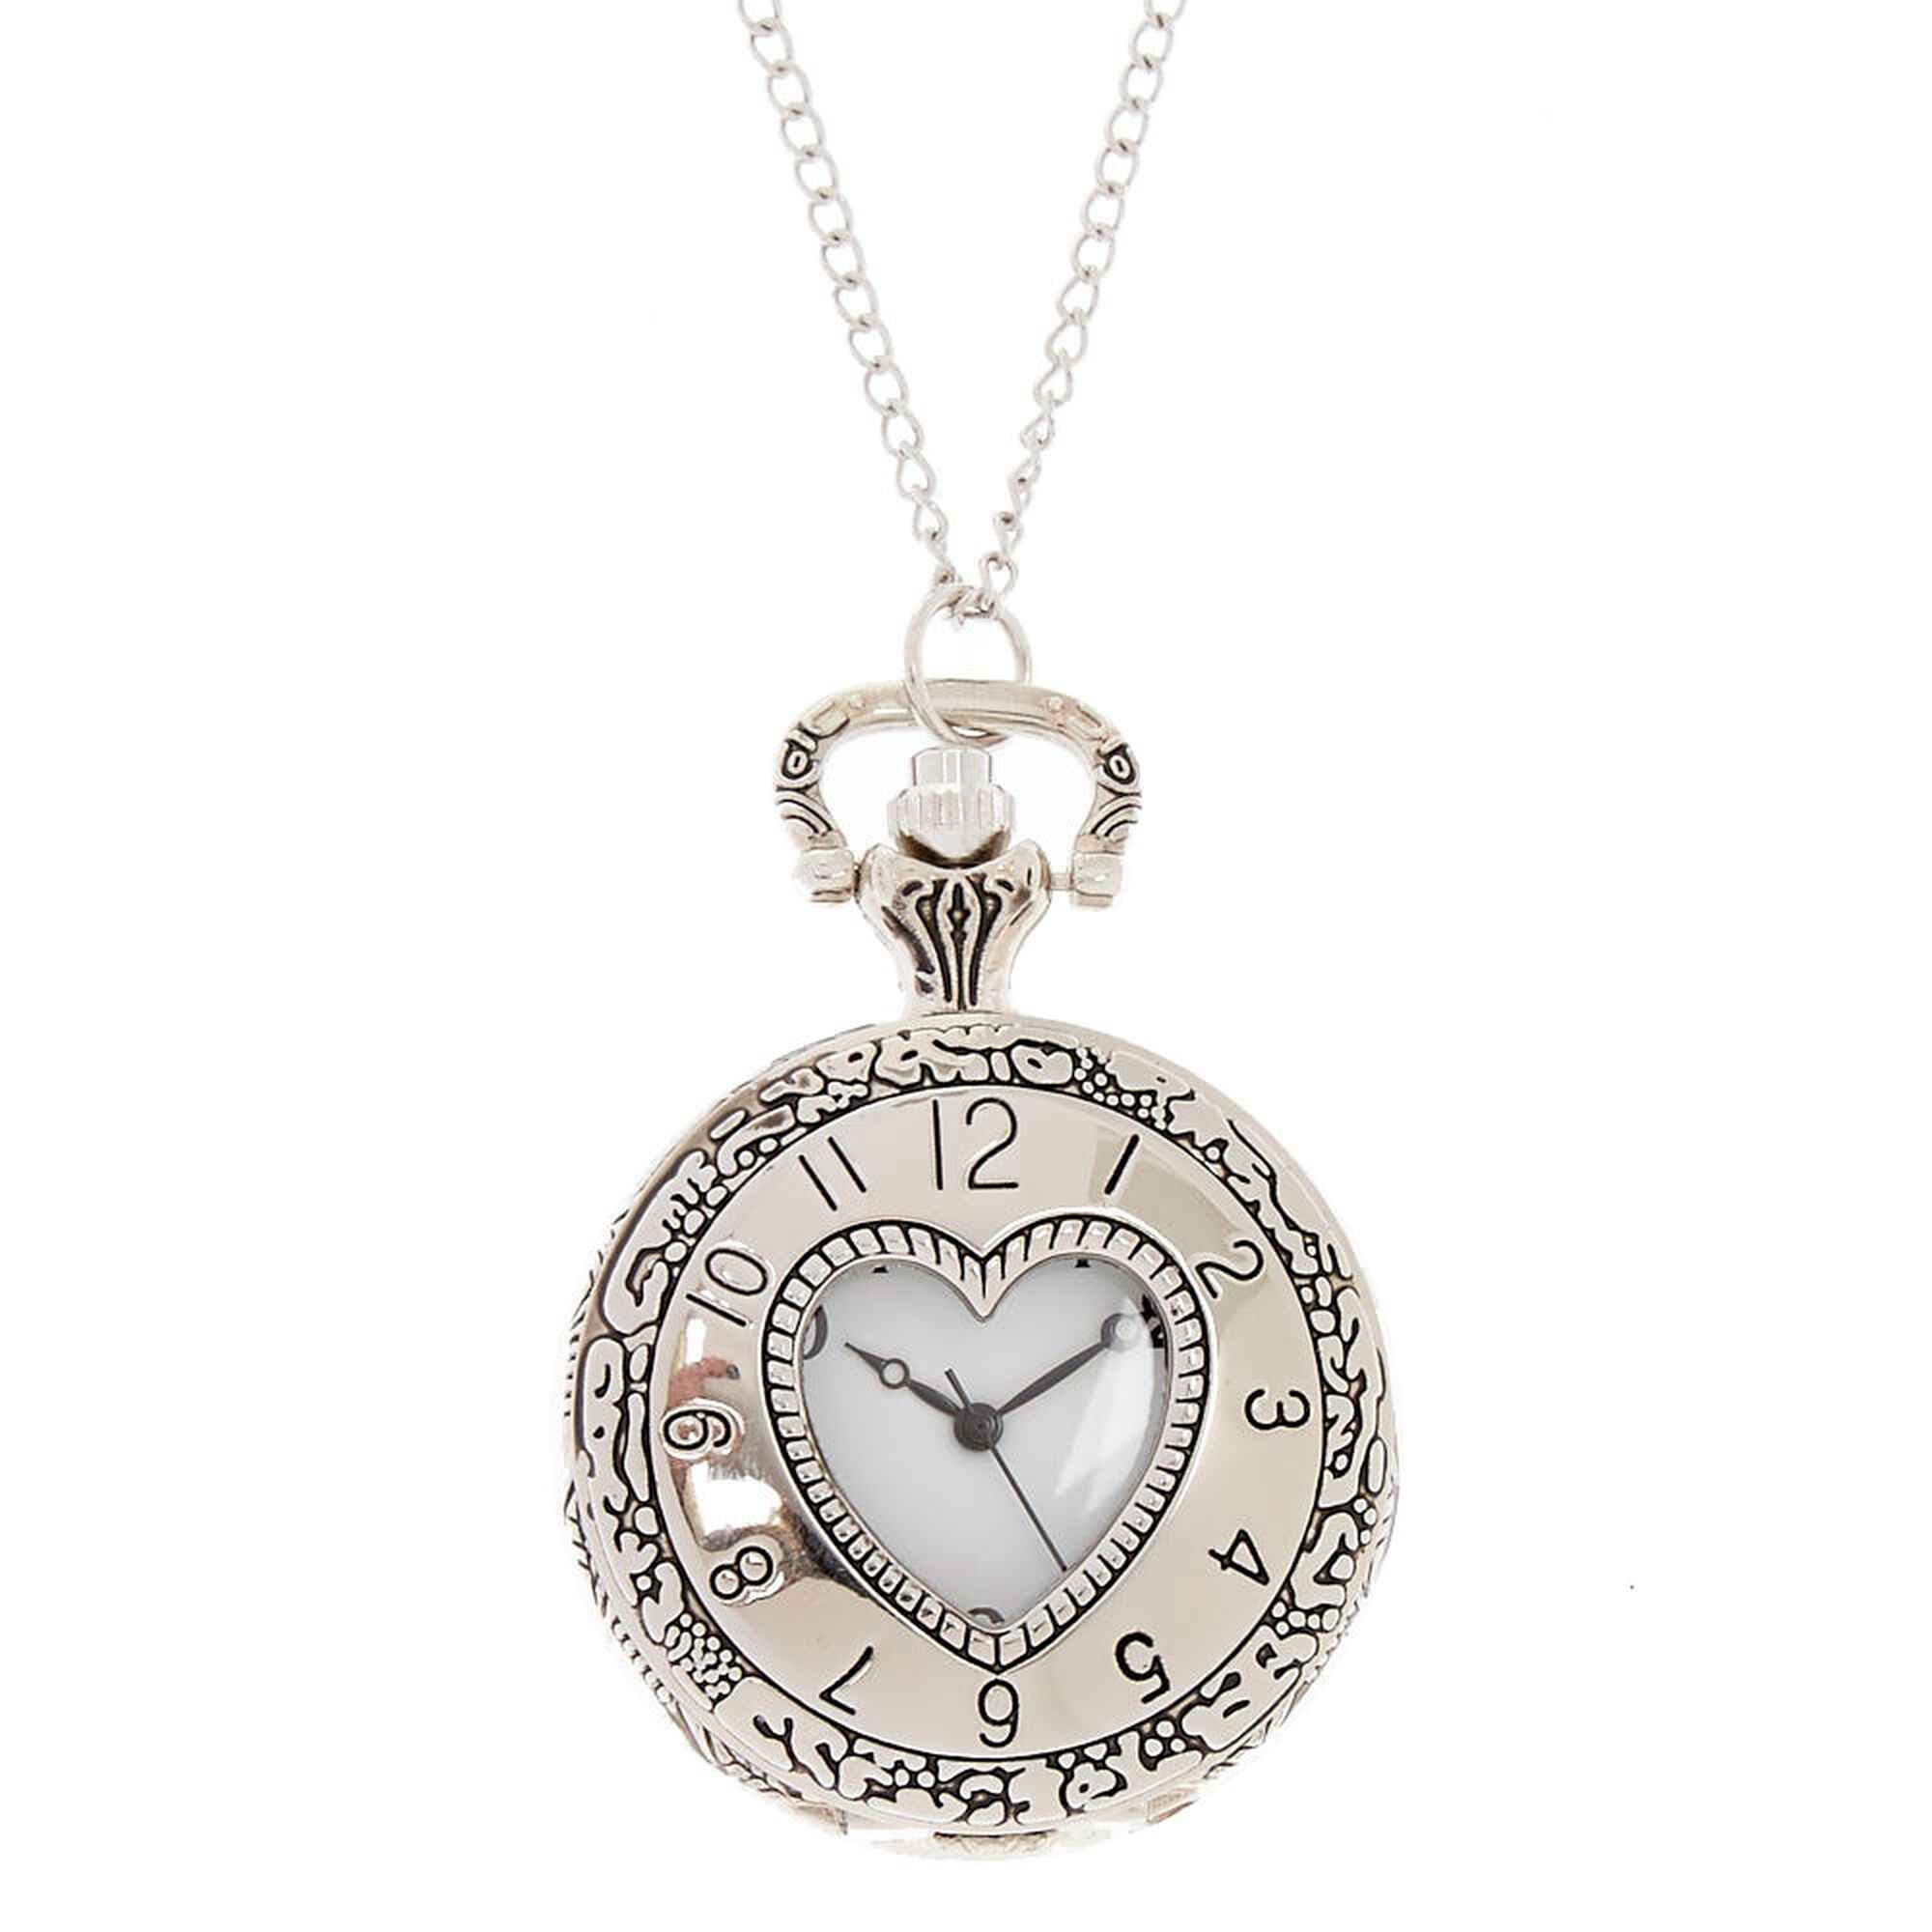 zoom pocket watch product largeimages res loading pdp hero blackheart pendant necklace celestial hi topic hot